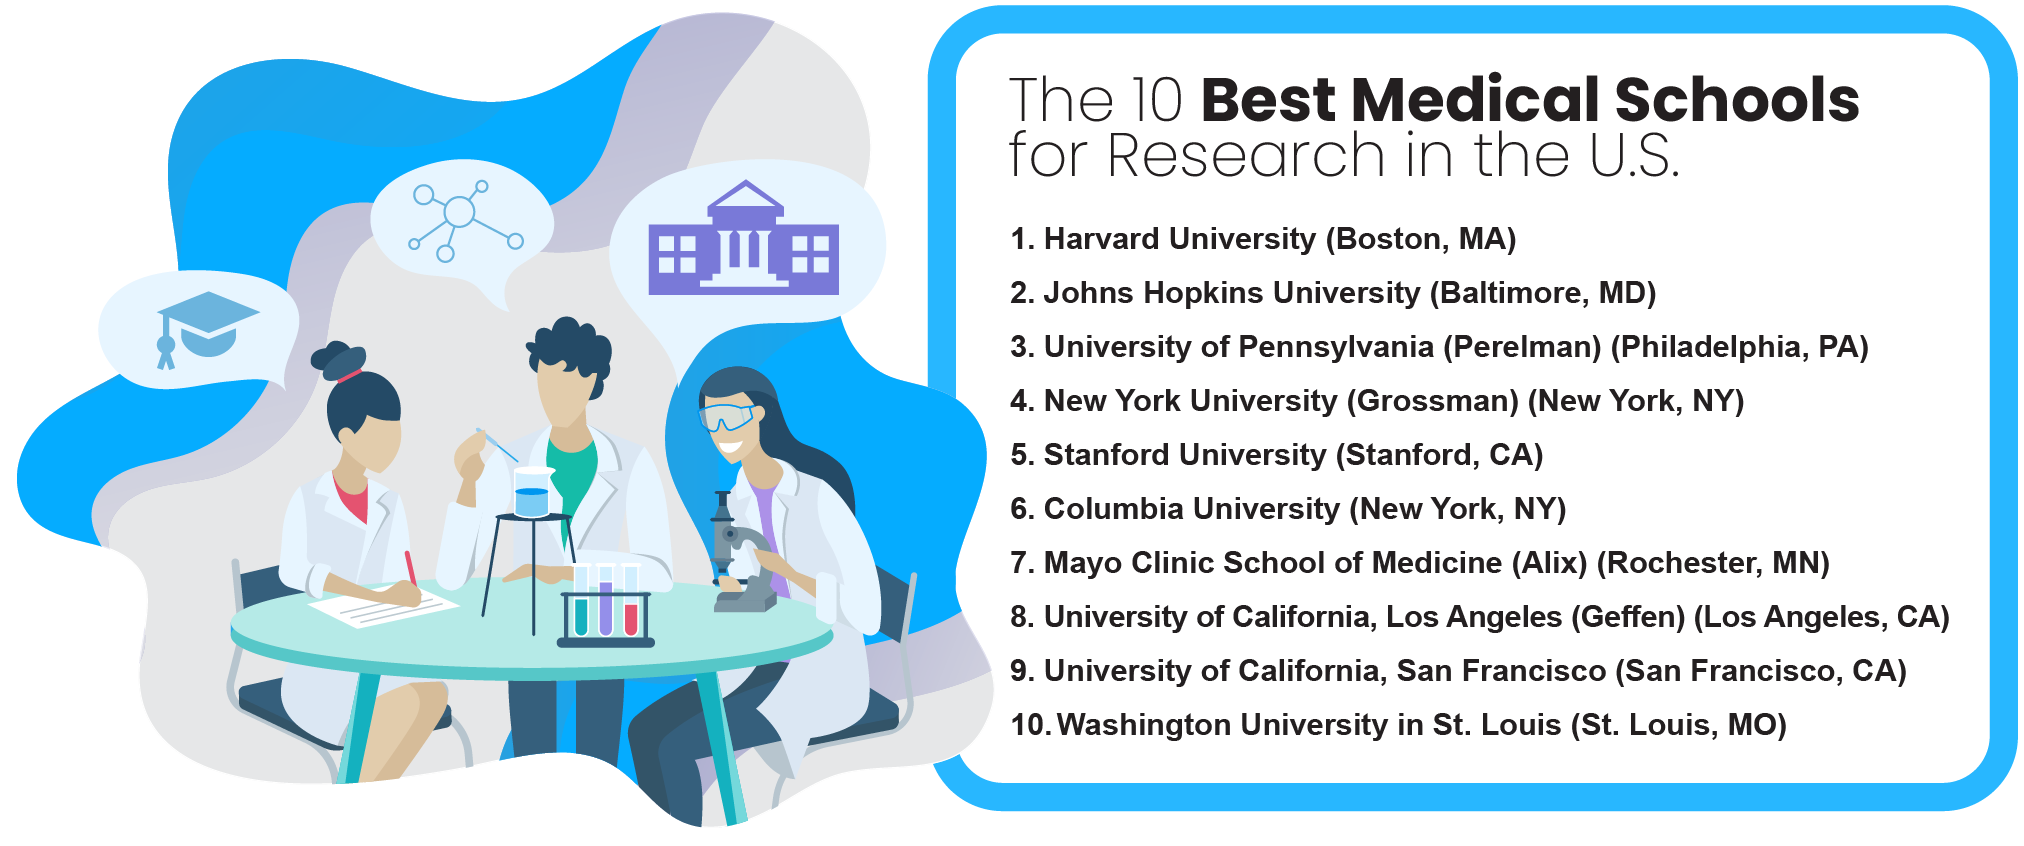 The 10 best medical schools for research.